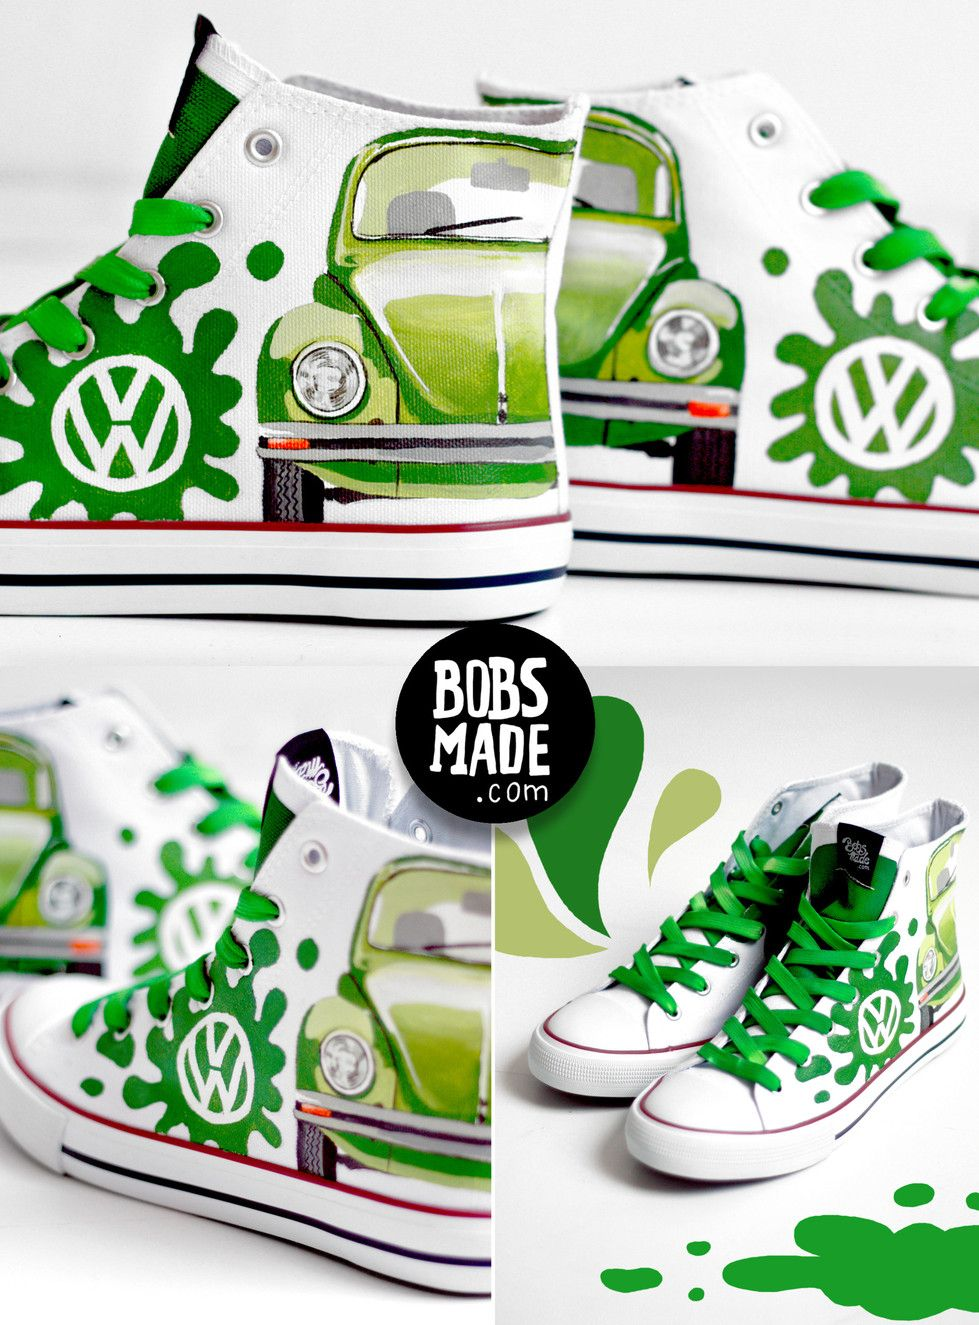 bobsmade vw shoes Käfer beetle  9313a5500